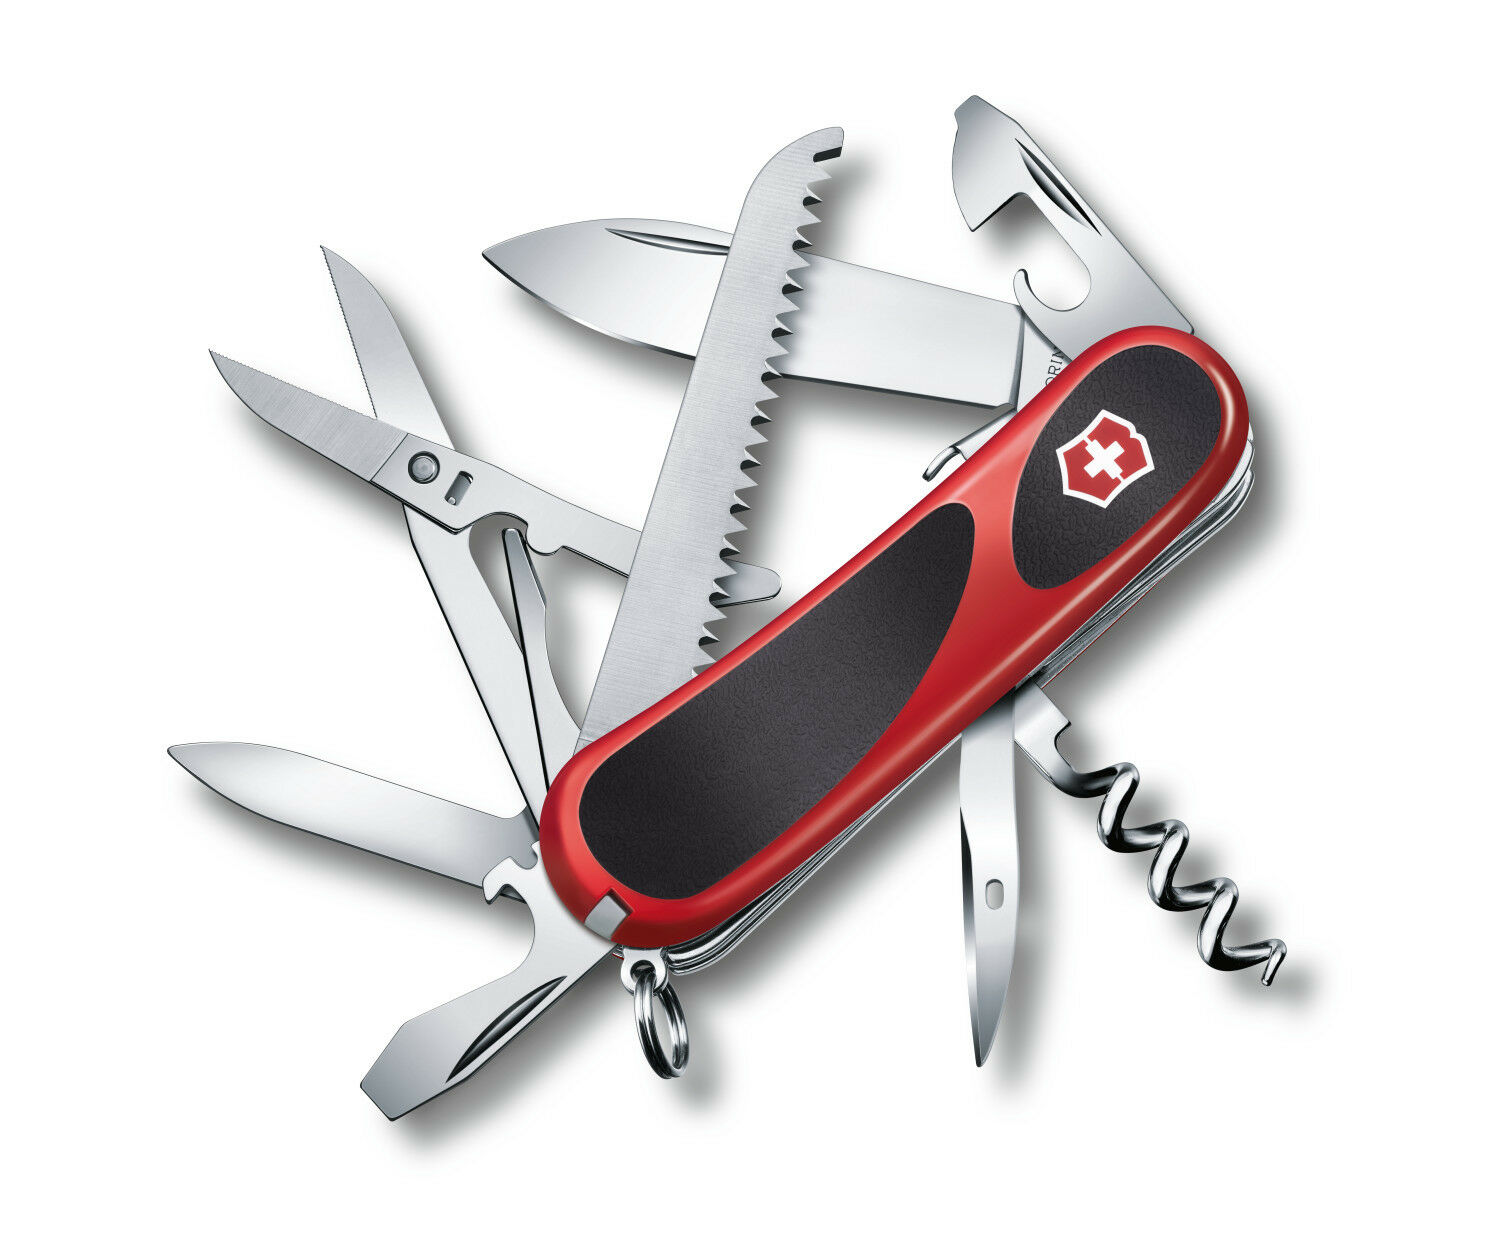 COUTEAU SUISSE VICTORINOX EVOGRIP SECURITY 17 S17 16 OUTILS  2.3913.SC DELEMONT  10 days return